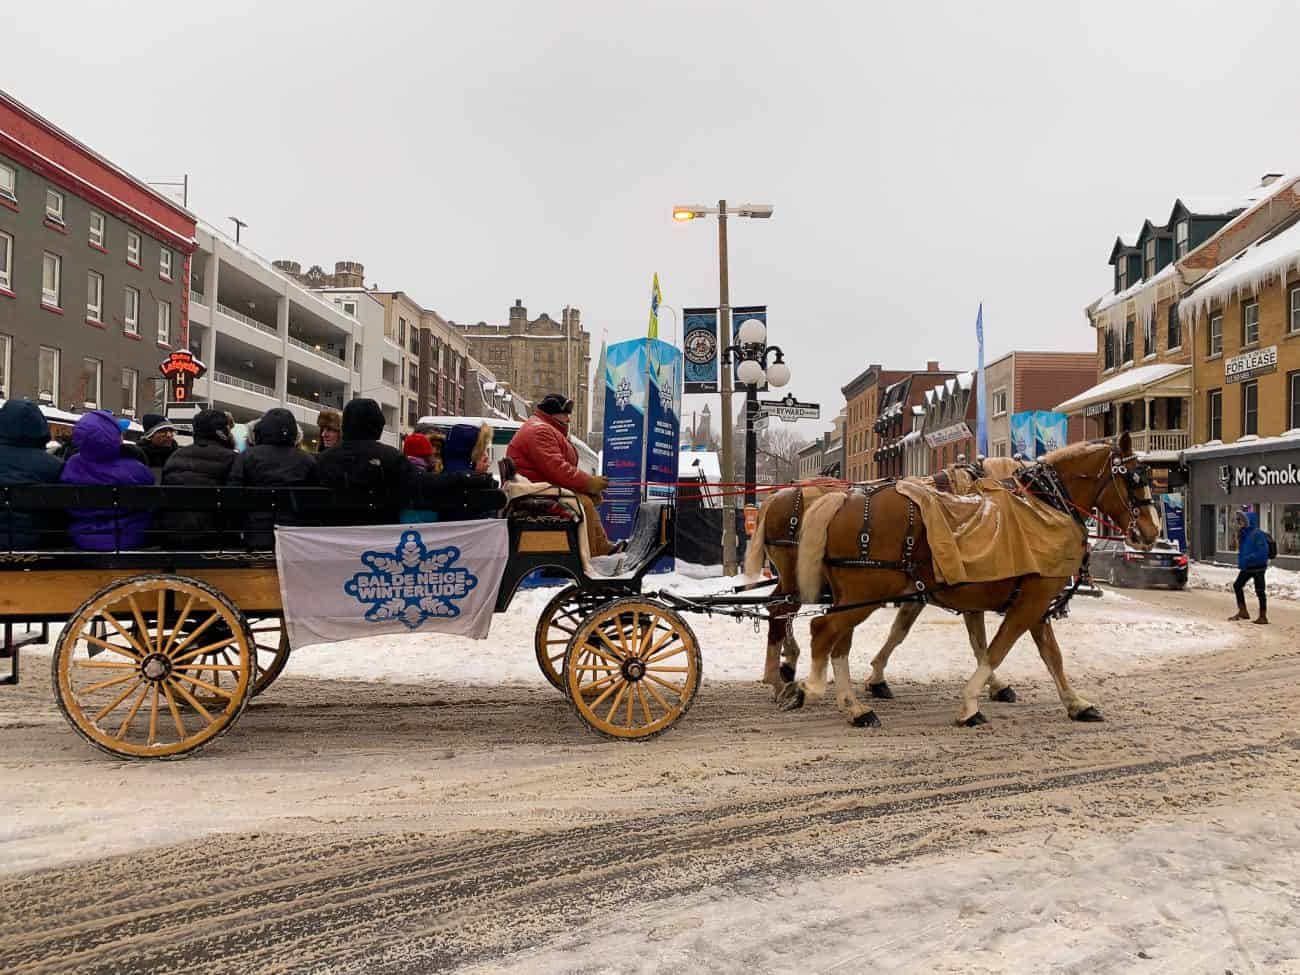 One of the modes of transportation to get around Winterlude Canada in Ottawa is to be pulled by horses